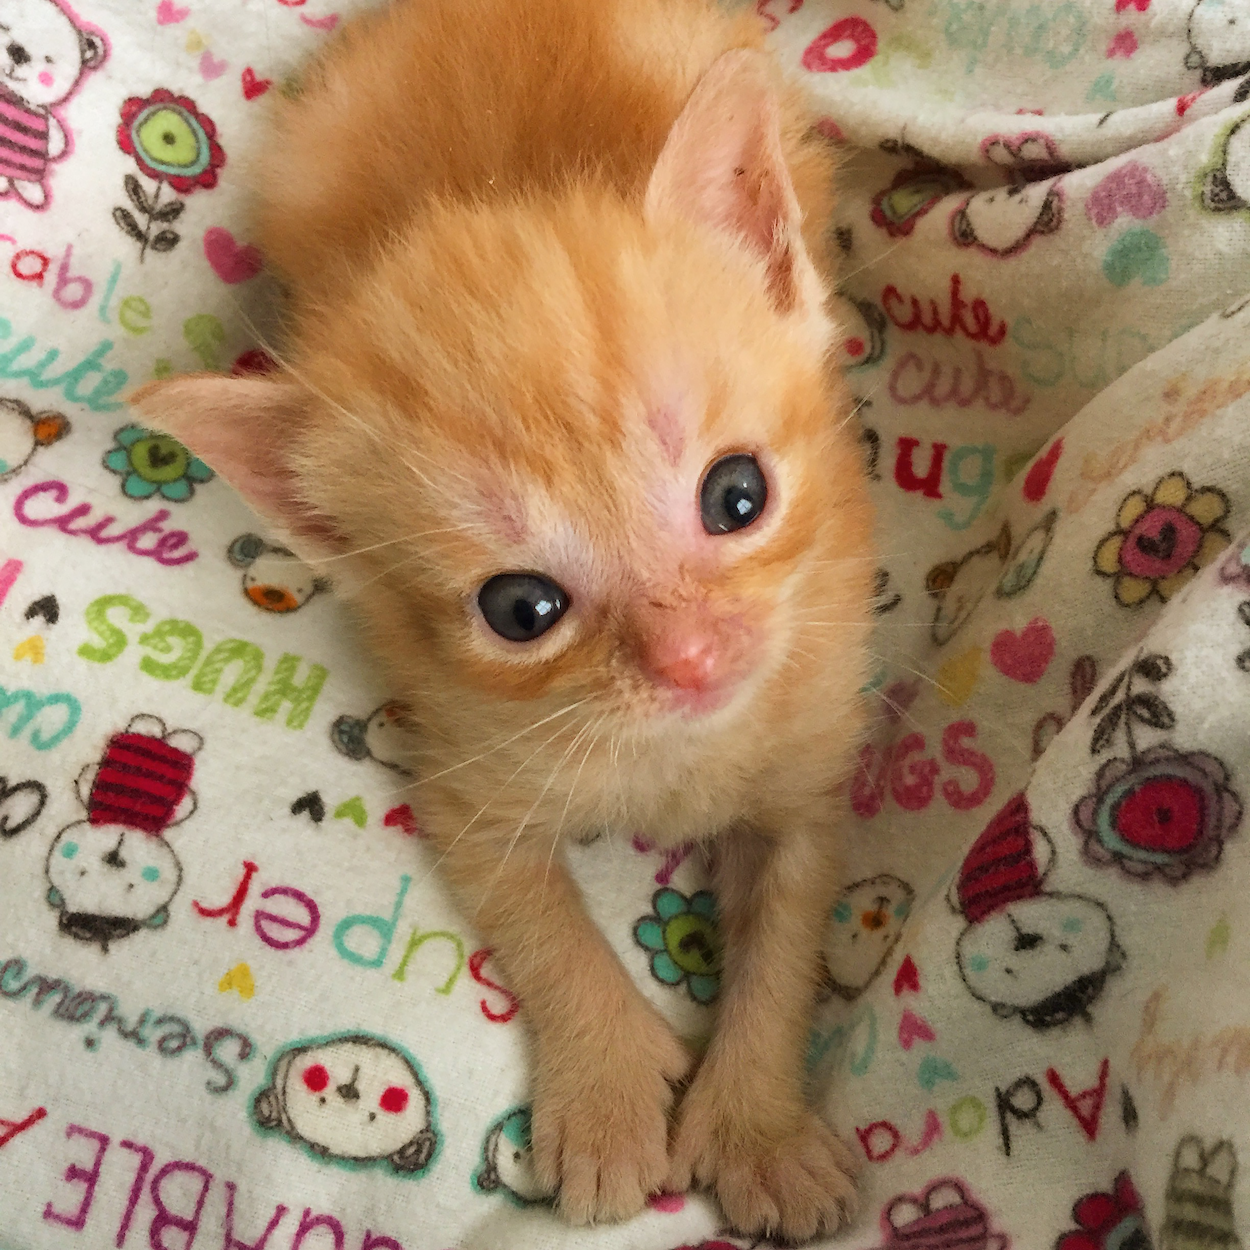 Need Funds For Tater Tot The 9 Week Old Hydrocephalic Kitten Lifesaving Shunt Surgery Kitkat Playroom Powered By Donorbox Kitten Baby Animals Cat In Heat